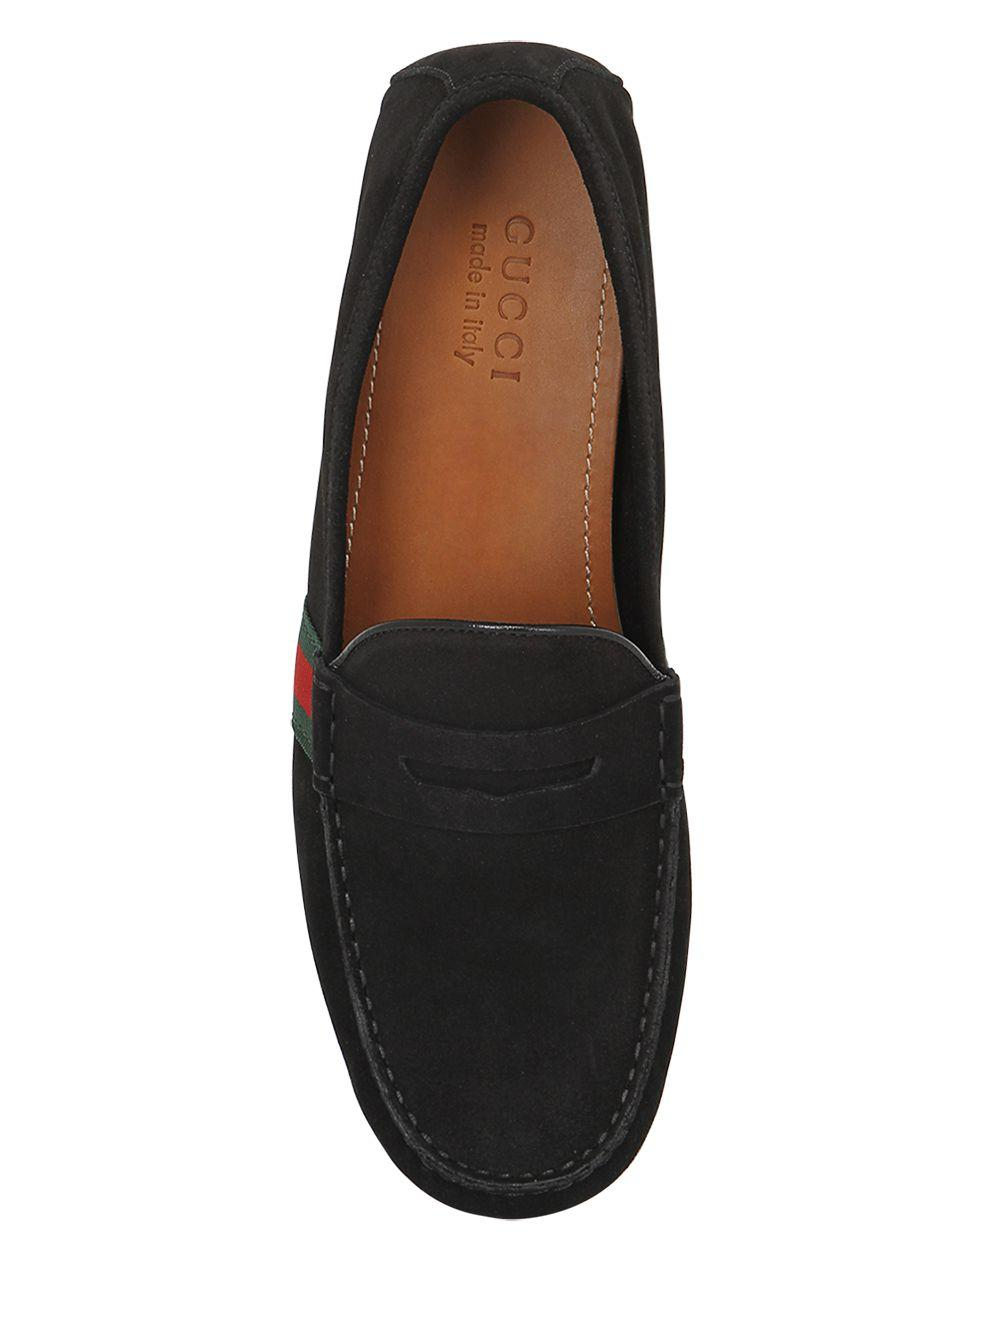 Gucci Leather Web Gg Driving Loafers in Brown for Men - Lyst